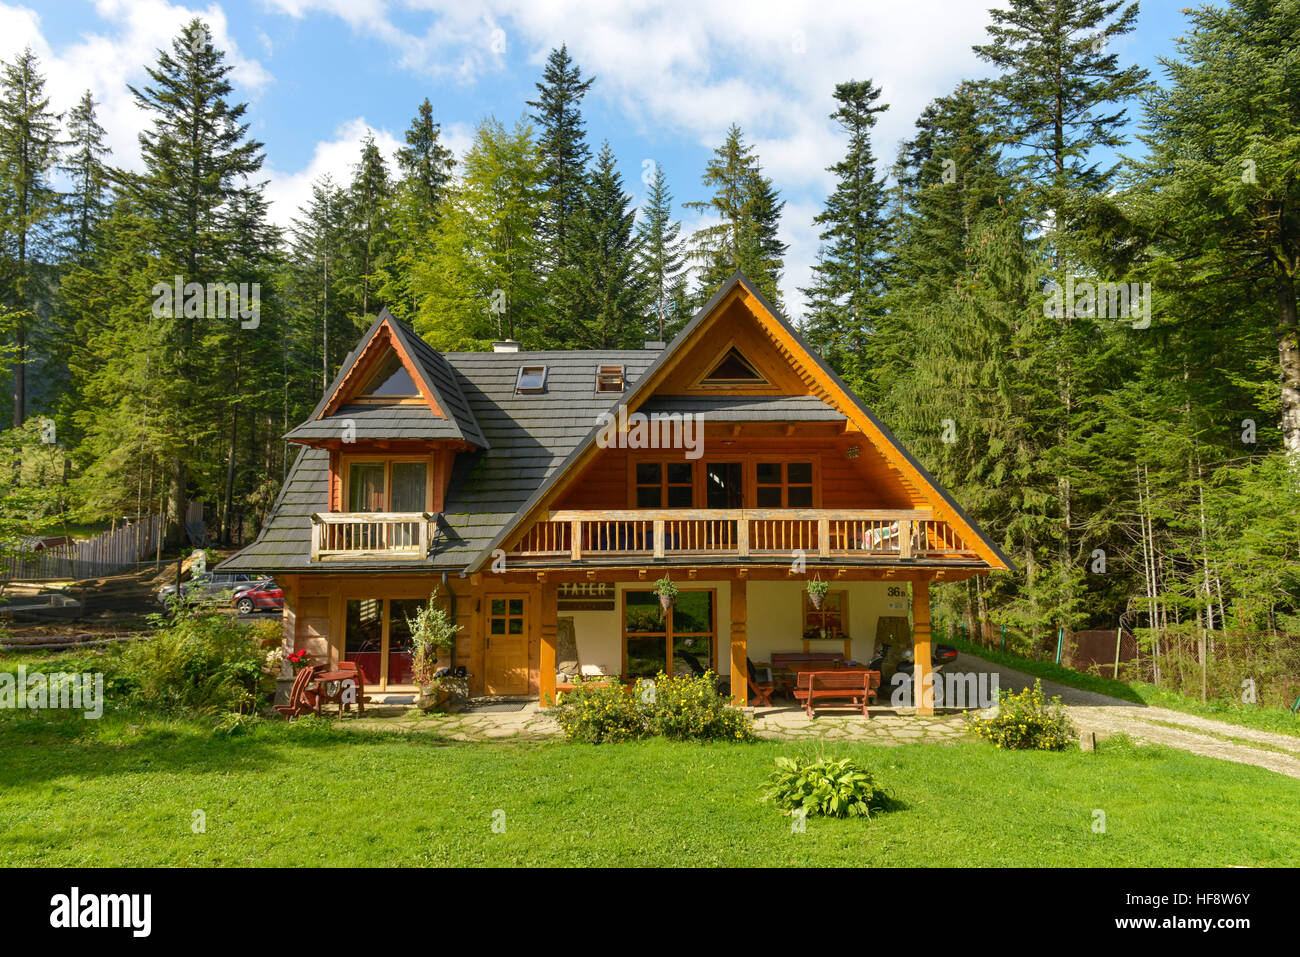 Ferienwohnungen, Holzhaus, Zakopane, Polen, Holiday apartments, timber house, Poland - Stock Image